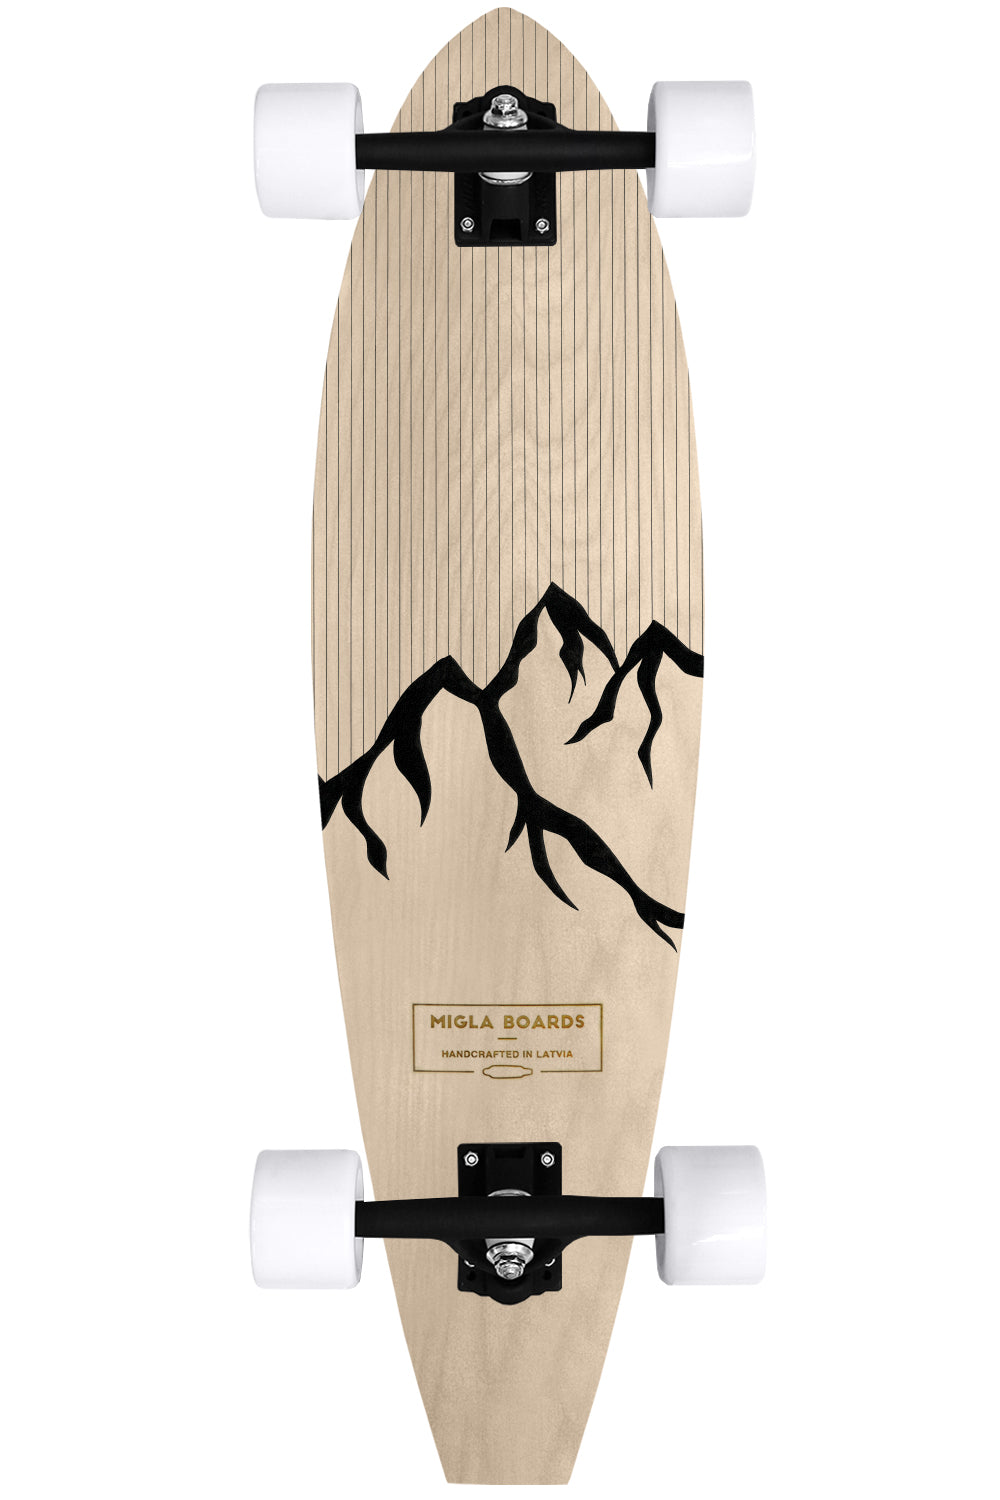 Mountain Board (will be available in 2021)